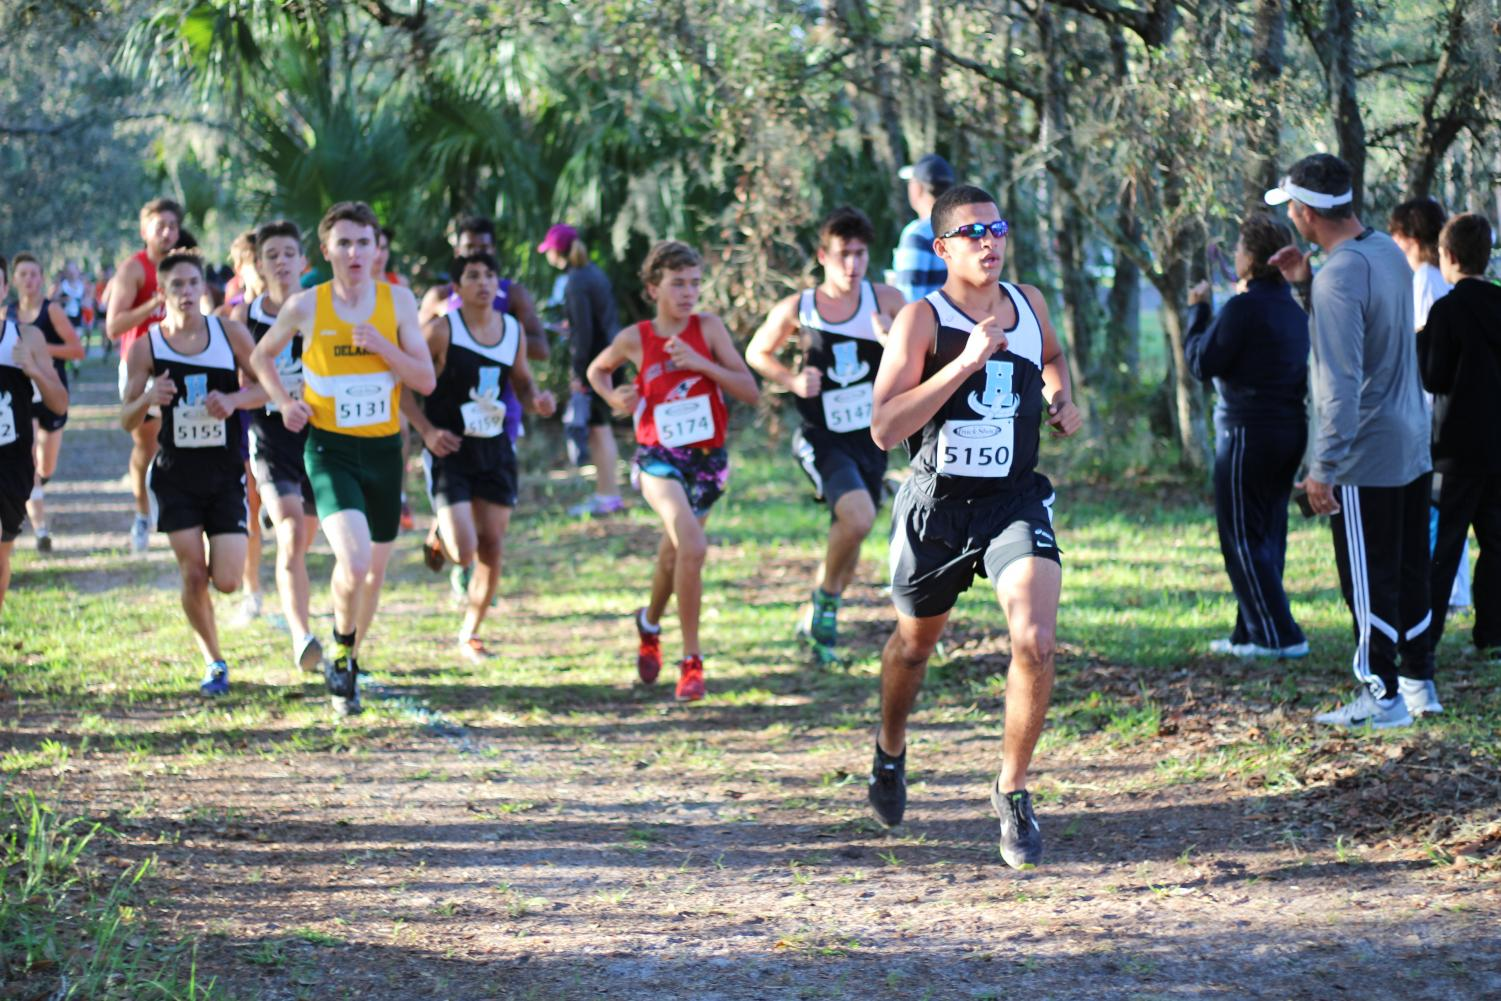 Senior Anthony Del Rosario nears the end of one of his cross country races. He picked up this sport in his junior year after he had too many concussions to continue on in football.